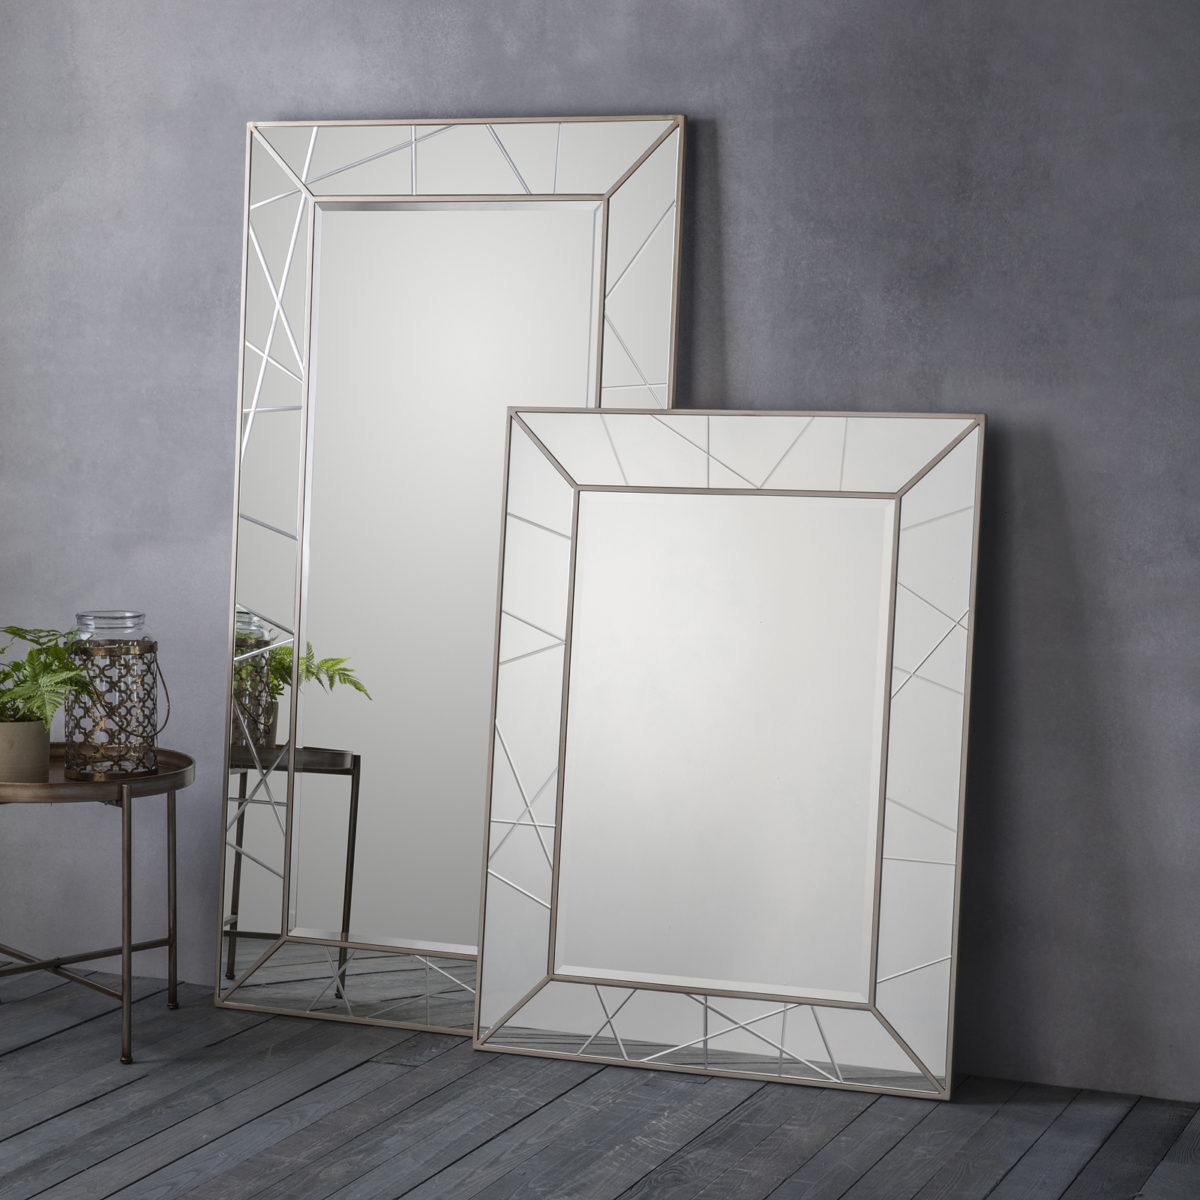 Trendy Floor To Wall Mirrors With Regard To All Glass Geometric Wall & Floor Standing Mirrors (View 19 of 20)